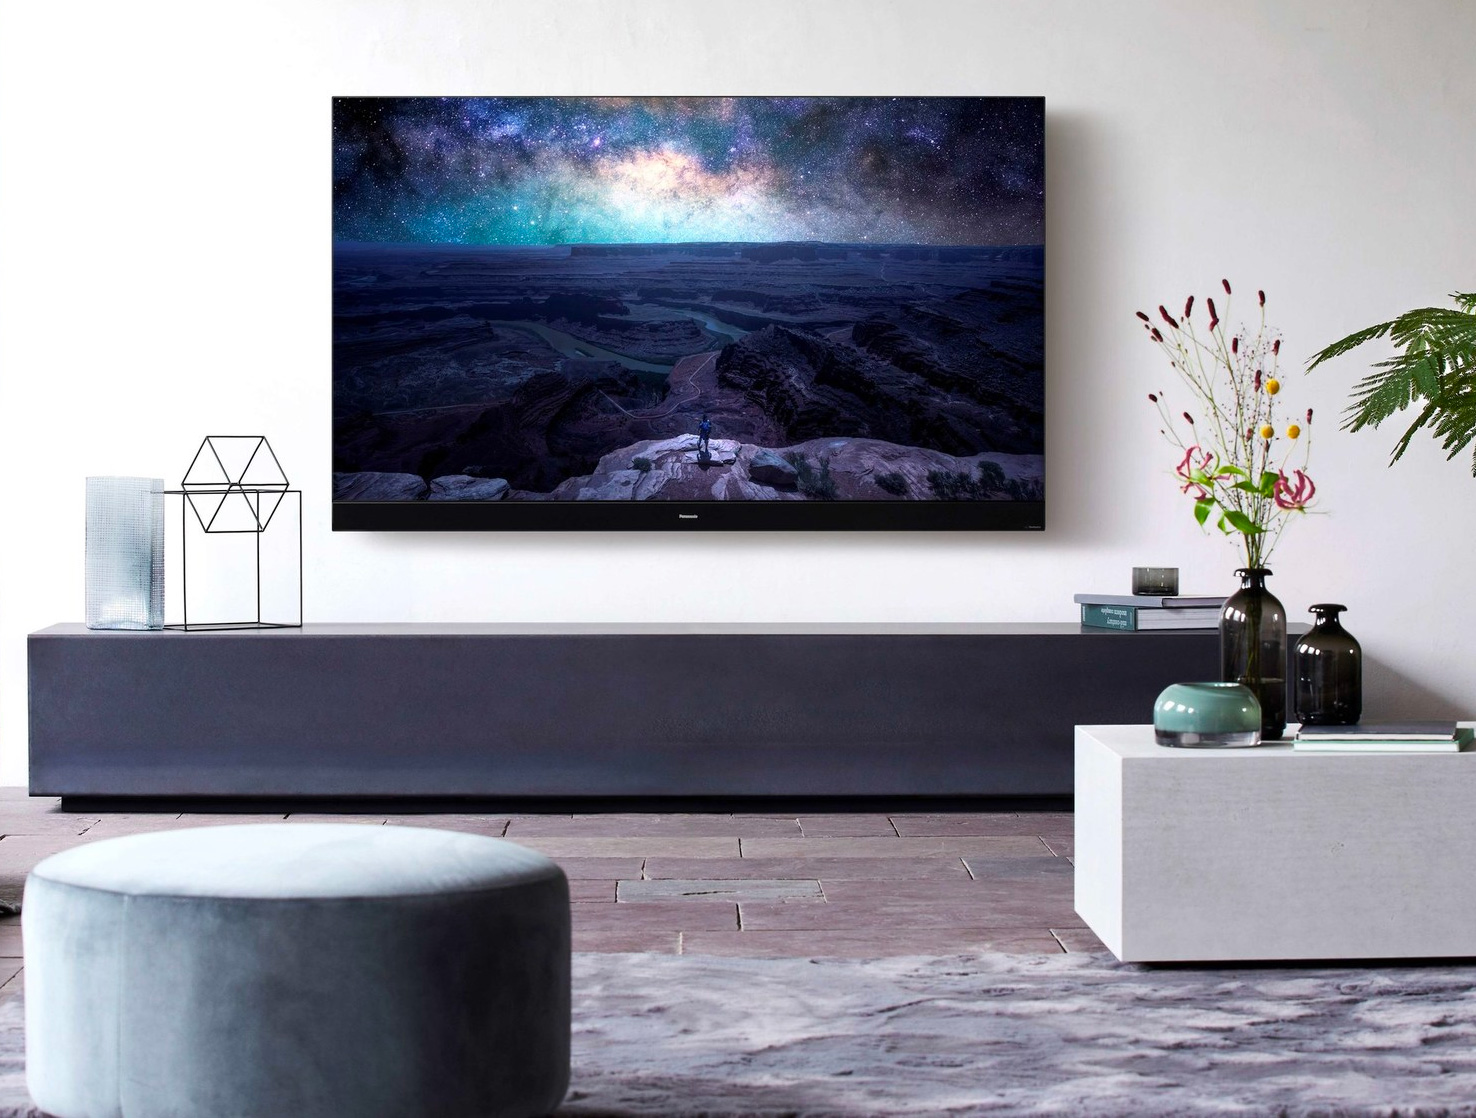 Panasonic Created an OLED TV For Fans of Film at werd.com